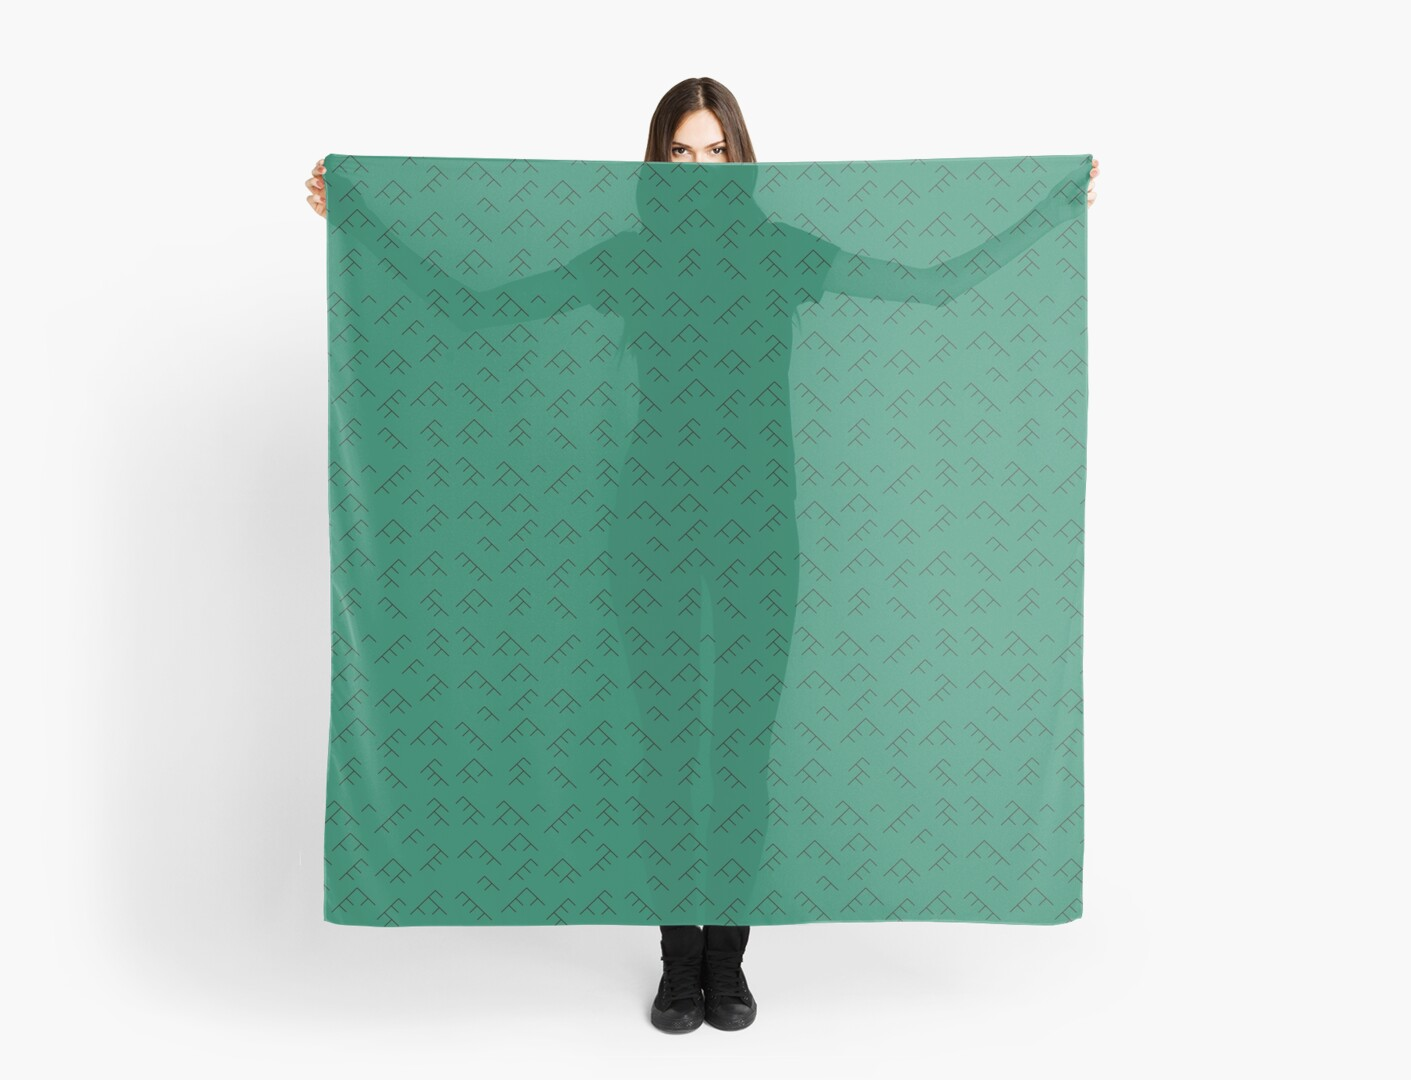 Tree diagram scarf - teal and black by Lingthusiasm